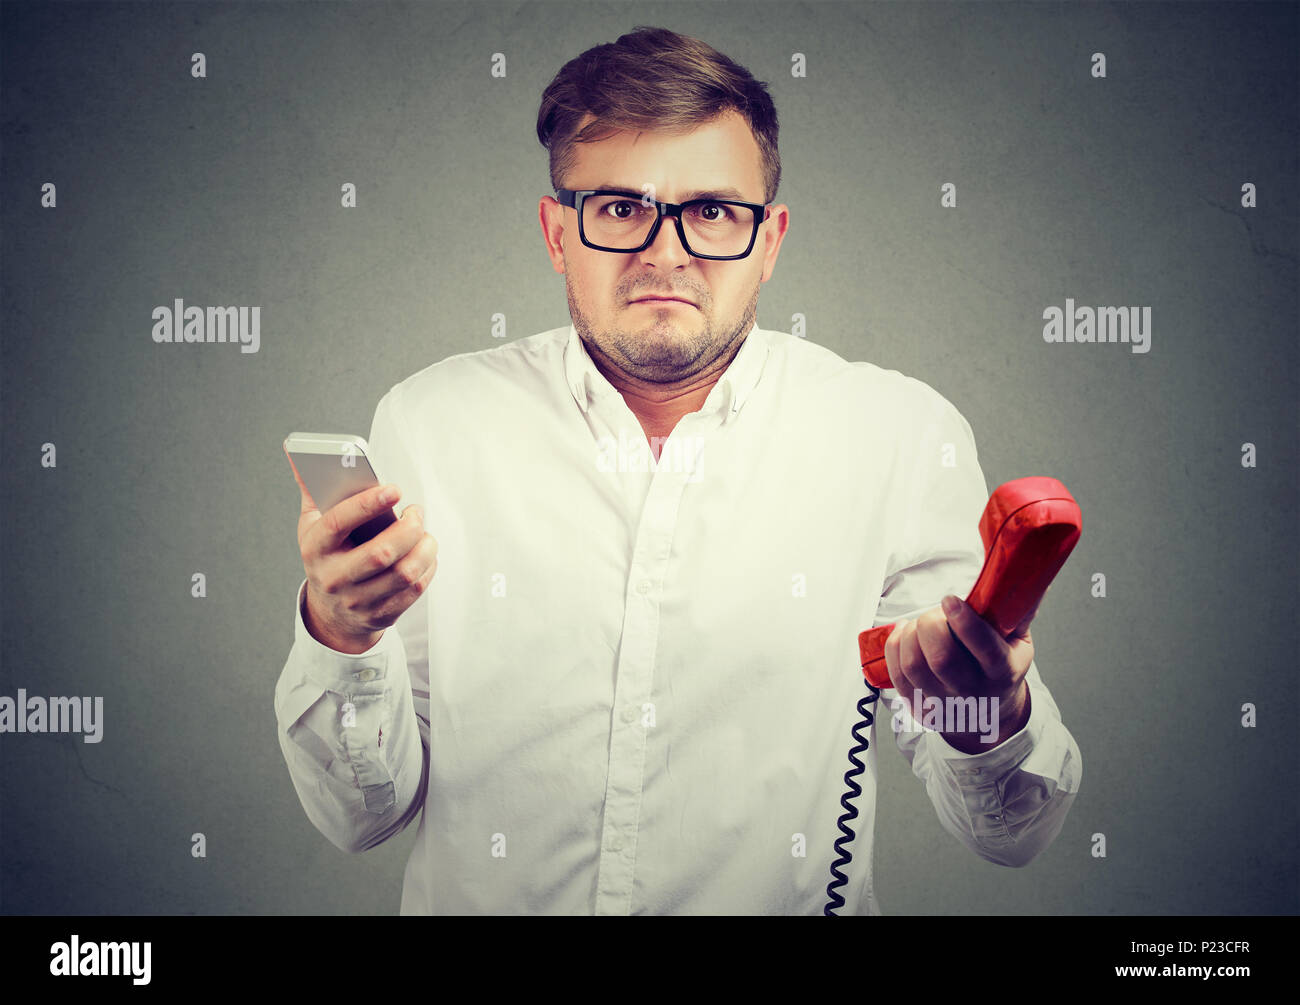 Young man holding old-fashioned red phone et smartphone moderne looking at camera dans la perplexité. Photo Stock